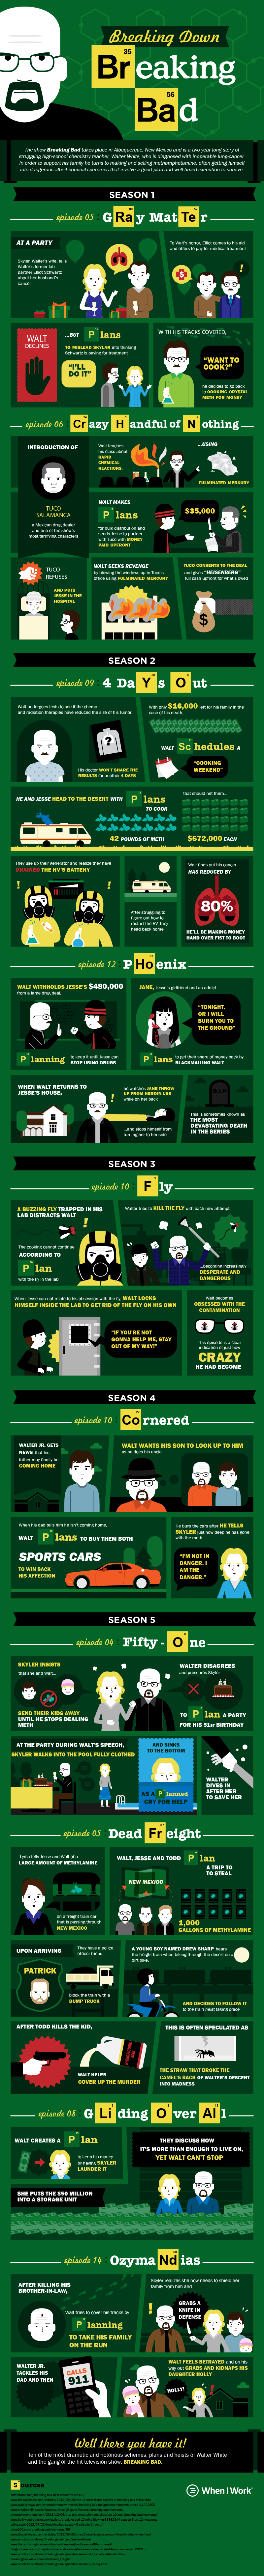 Breaking Down Breaking Bad